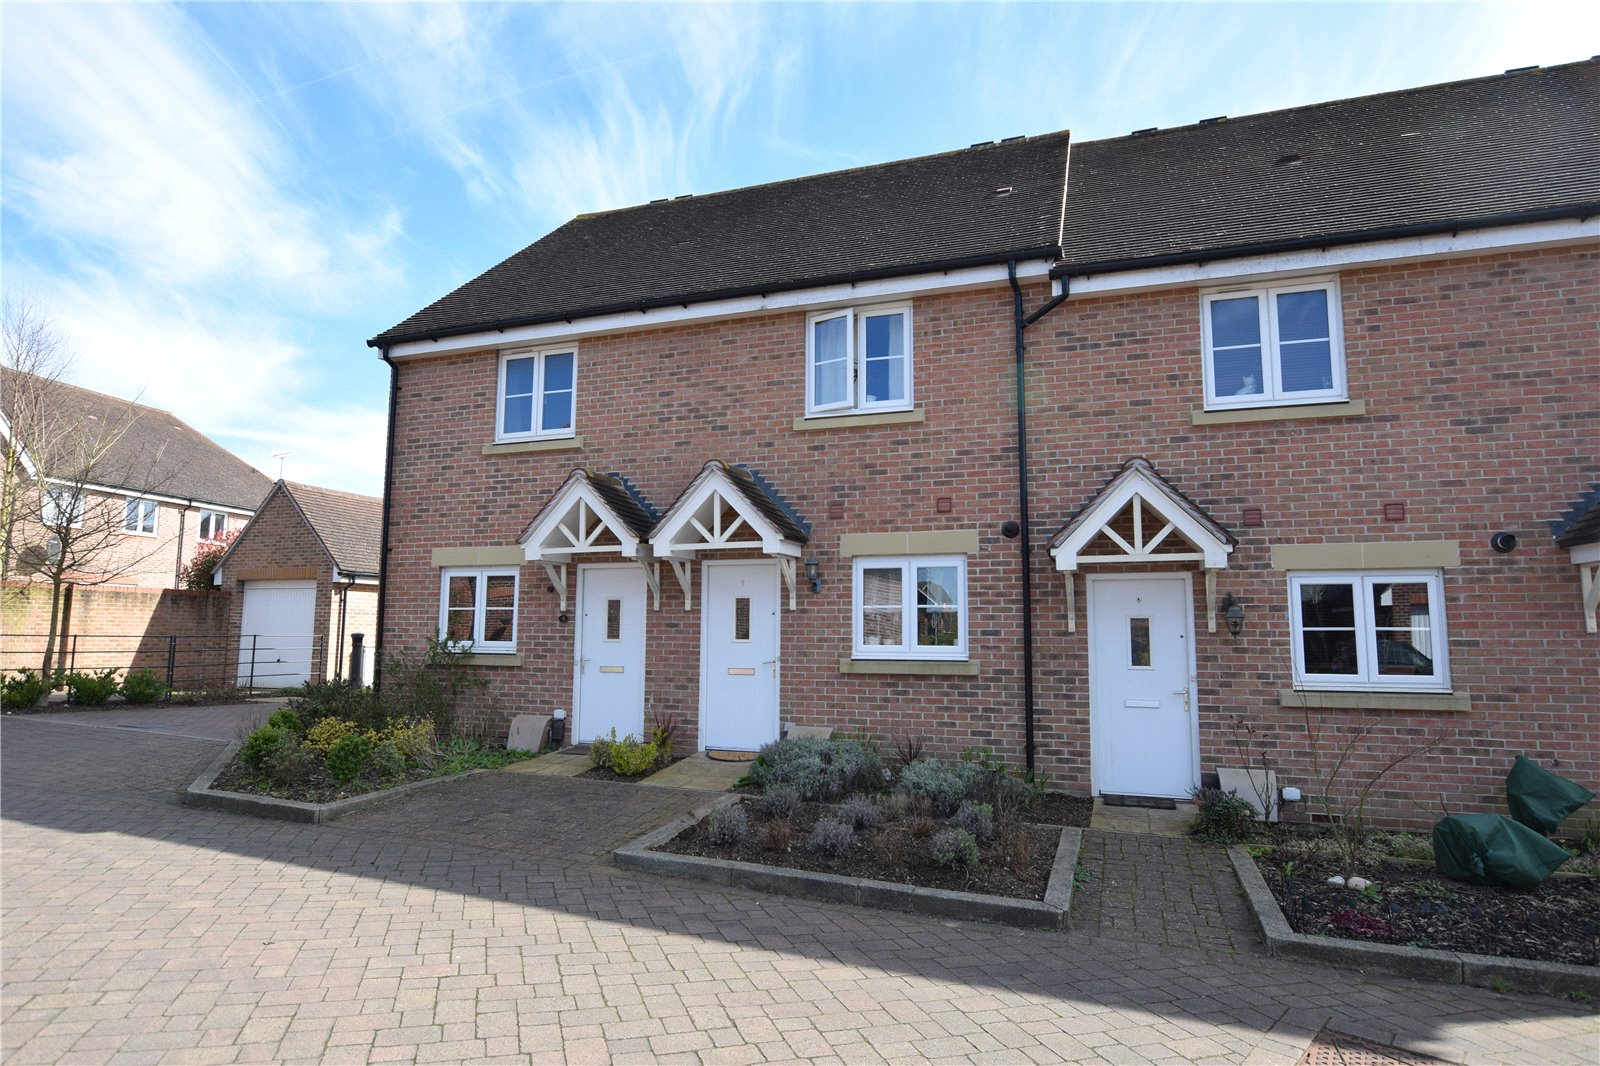 2 Bedrooms Terraced House for sale in Pipit Green, Bracknell, Berkshire, RG12